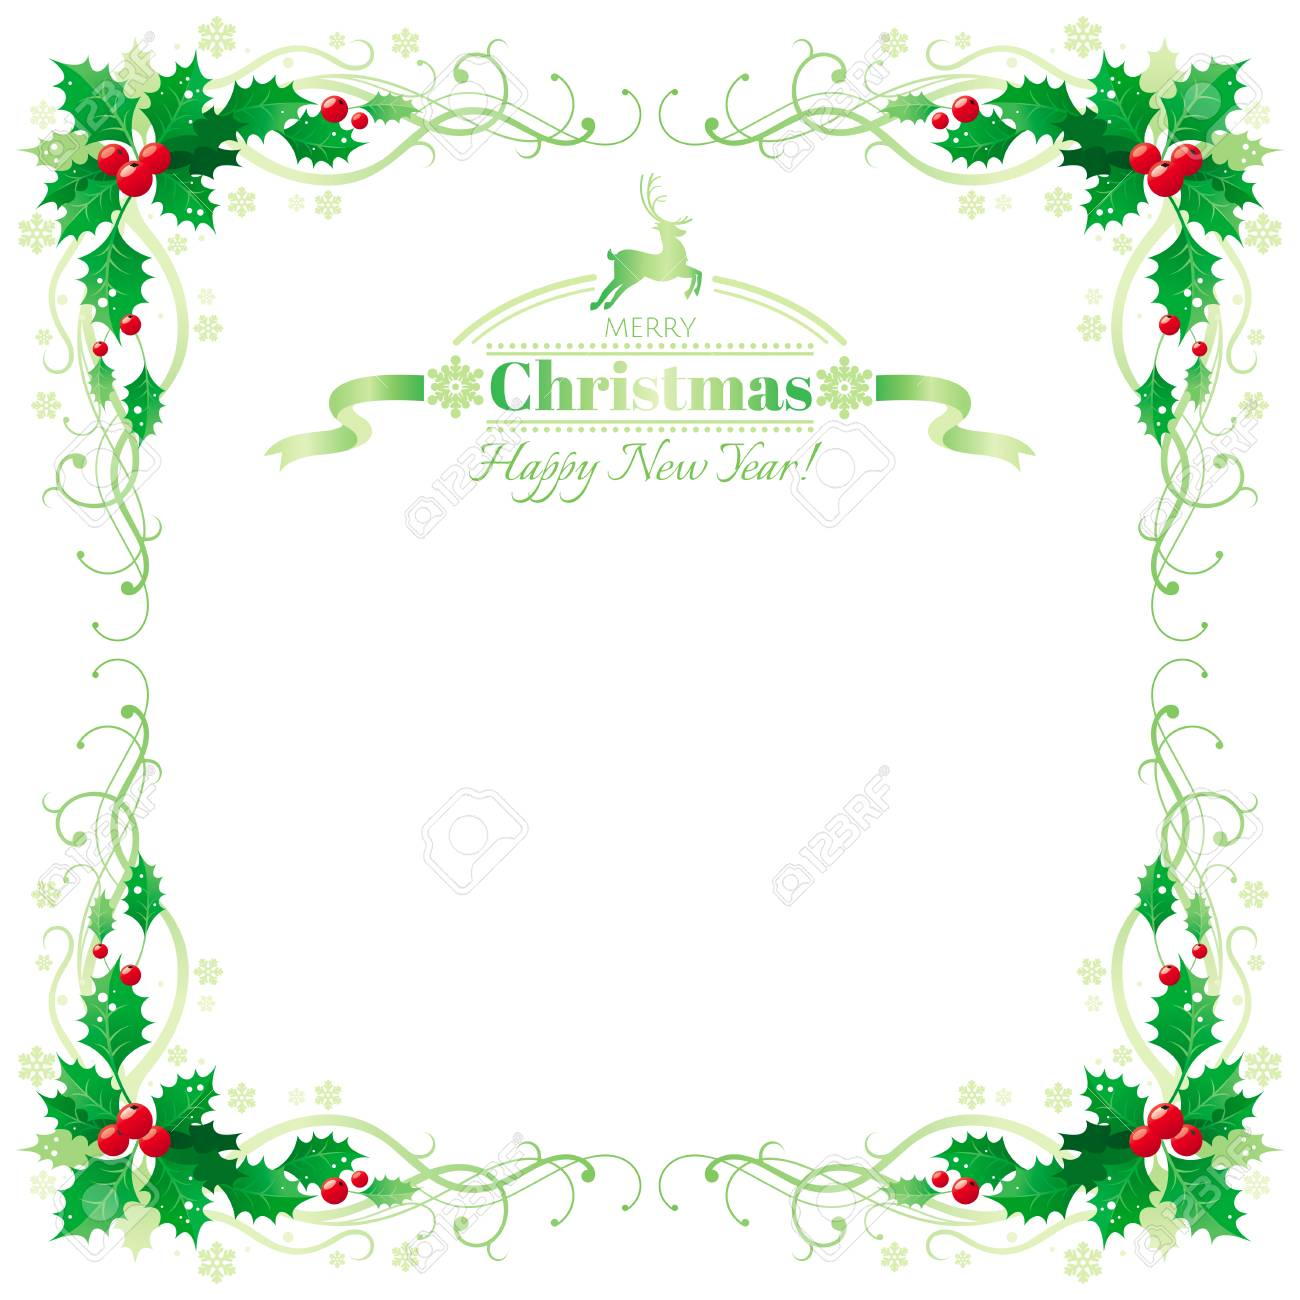 merry christmas and happy new year border frame with holly berry leafs text lettering reindeer